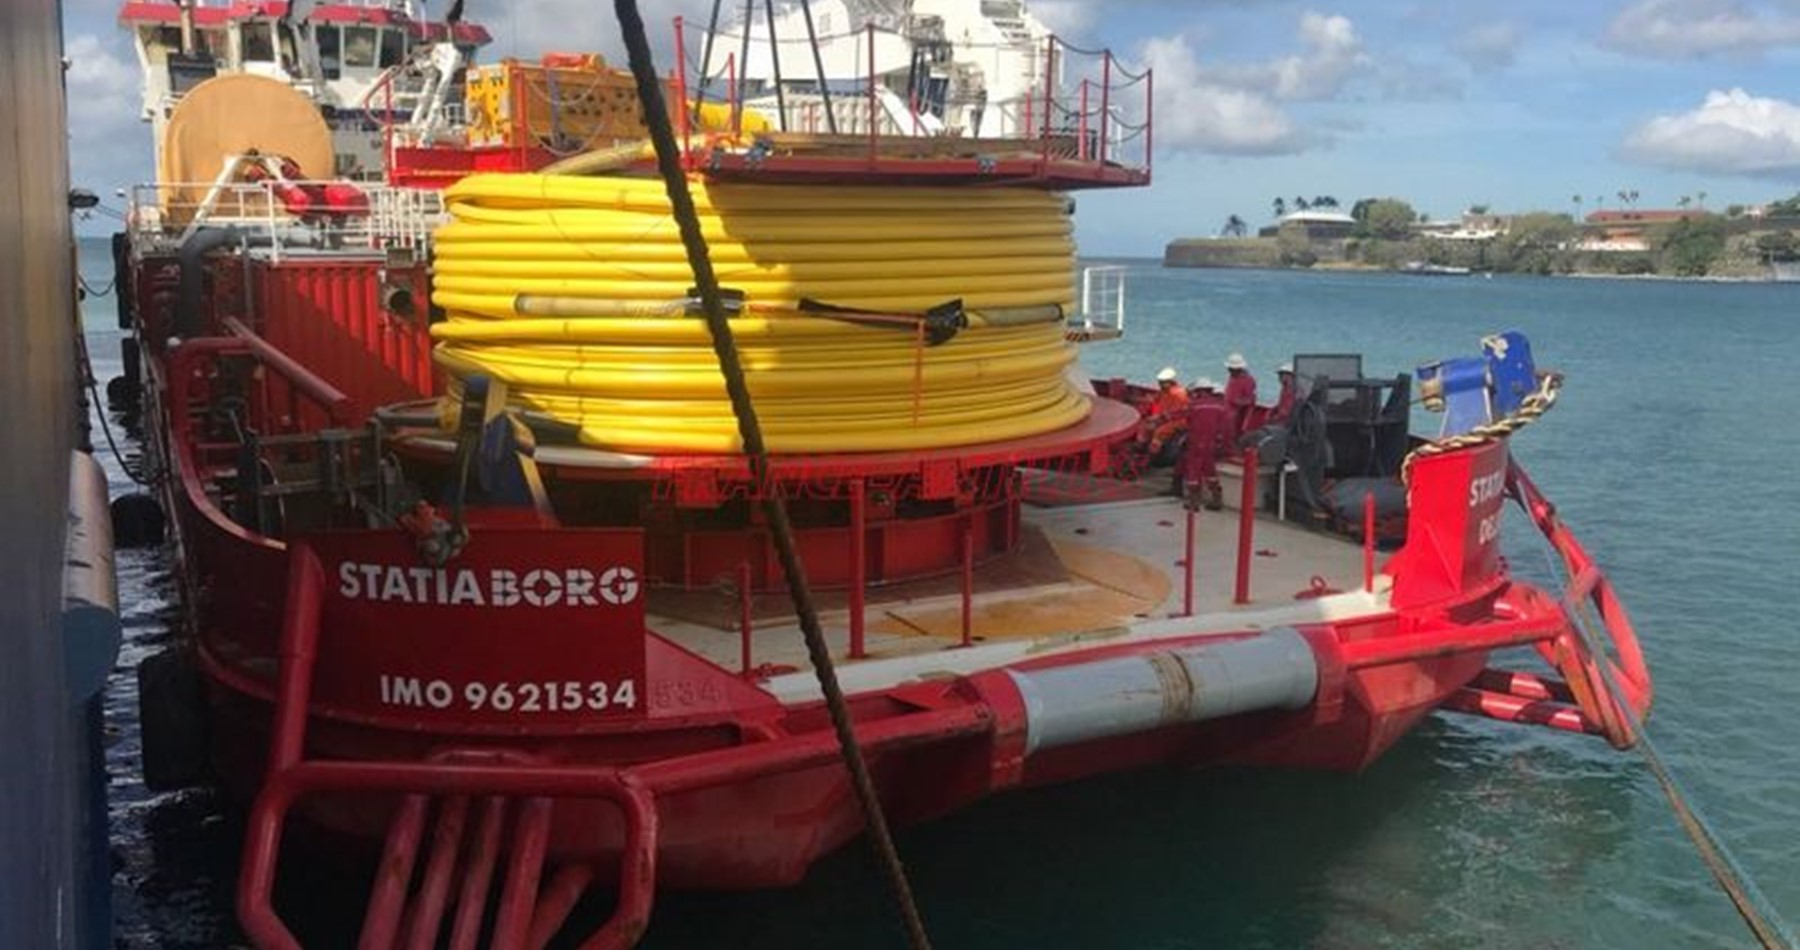 Cable laying equipment on Statiaborg